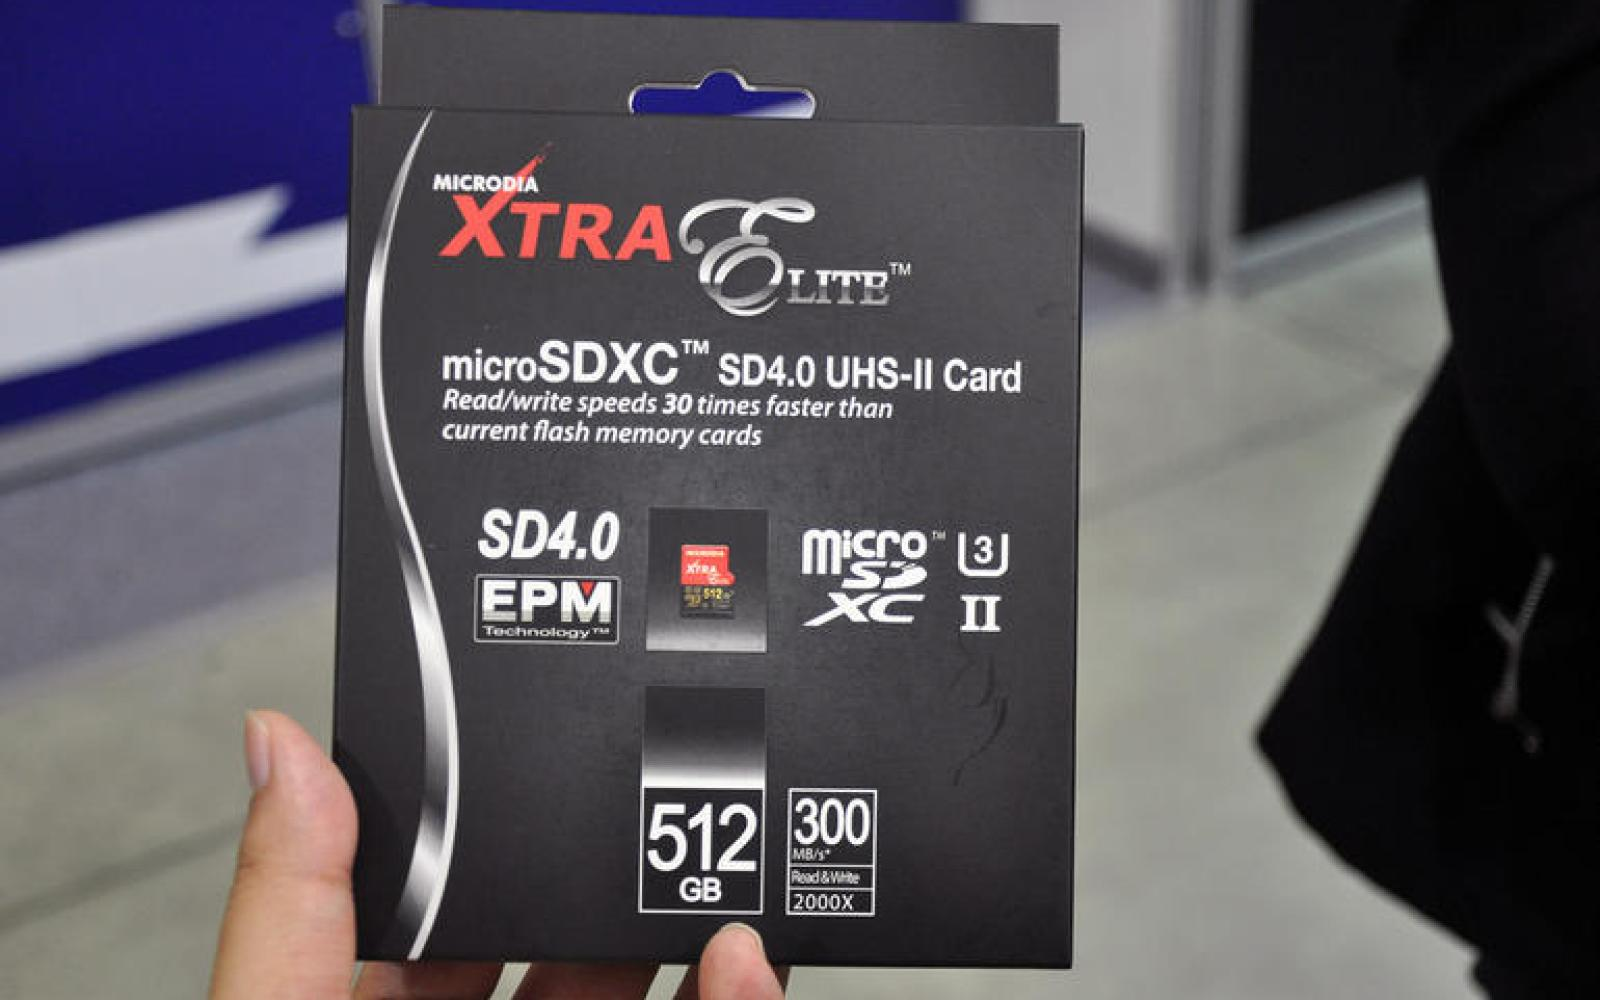 Microdia plans a microSD card with 512 GB of storage space, release in July